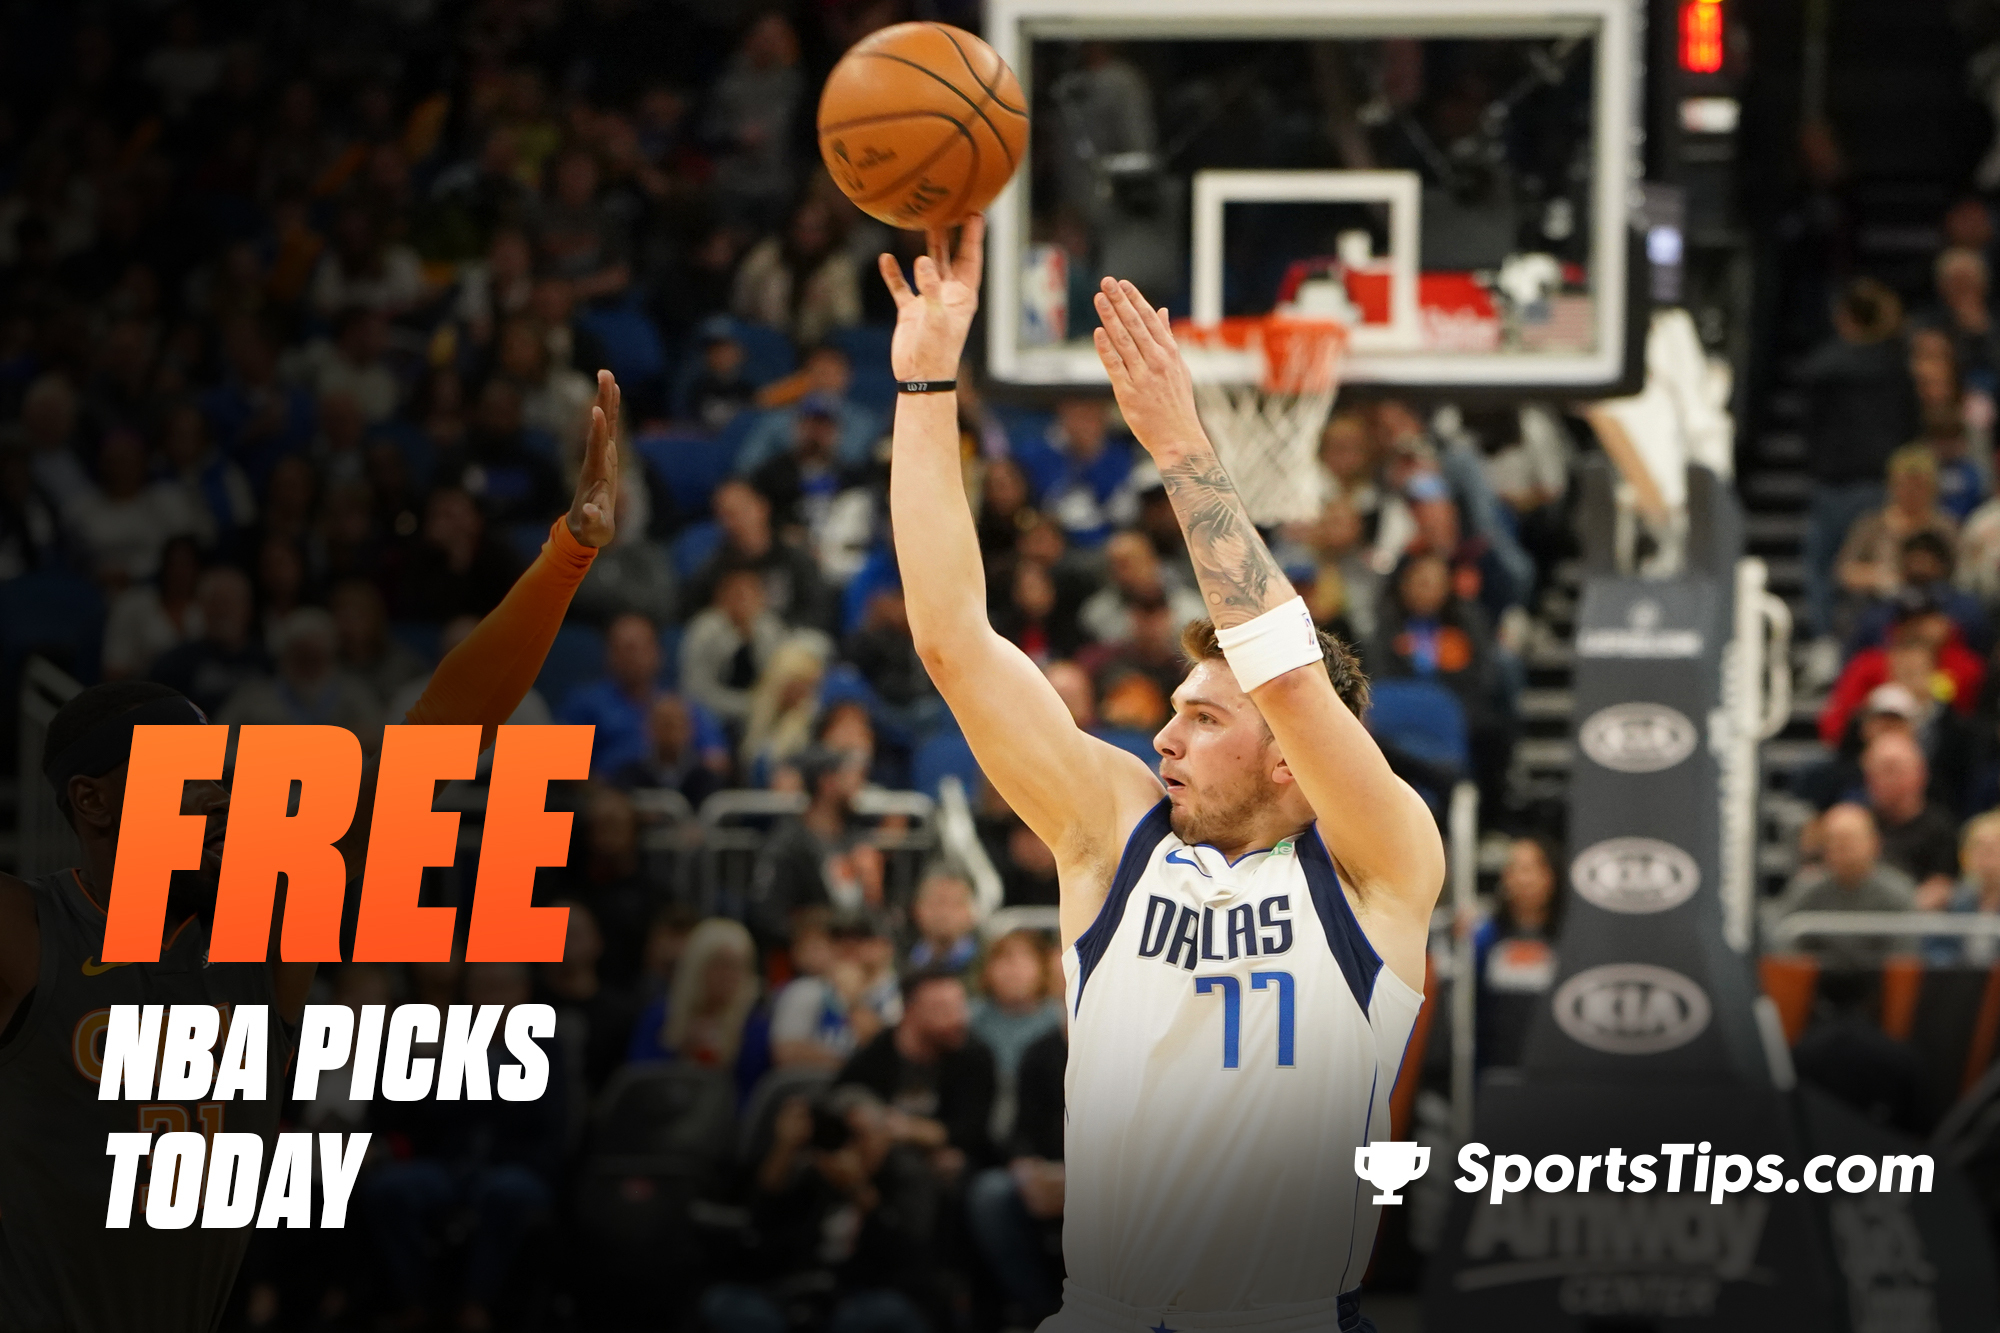 Free NBA Picks Today for Sunday, April 11th, 2021